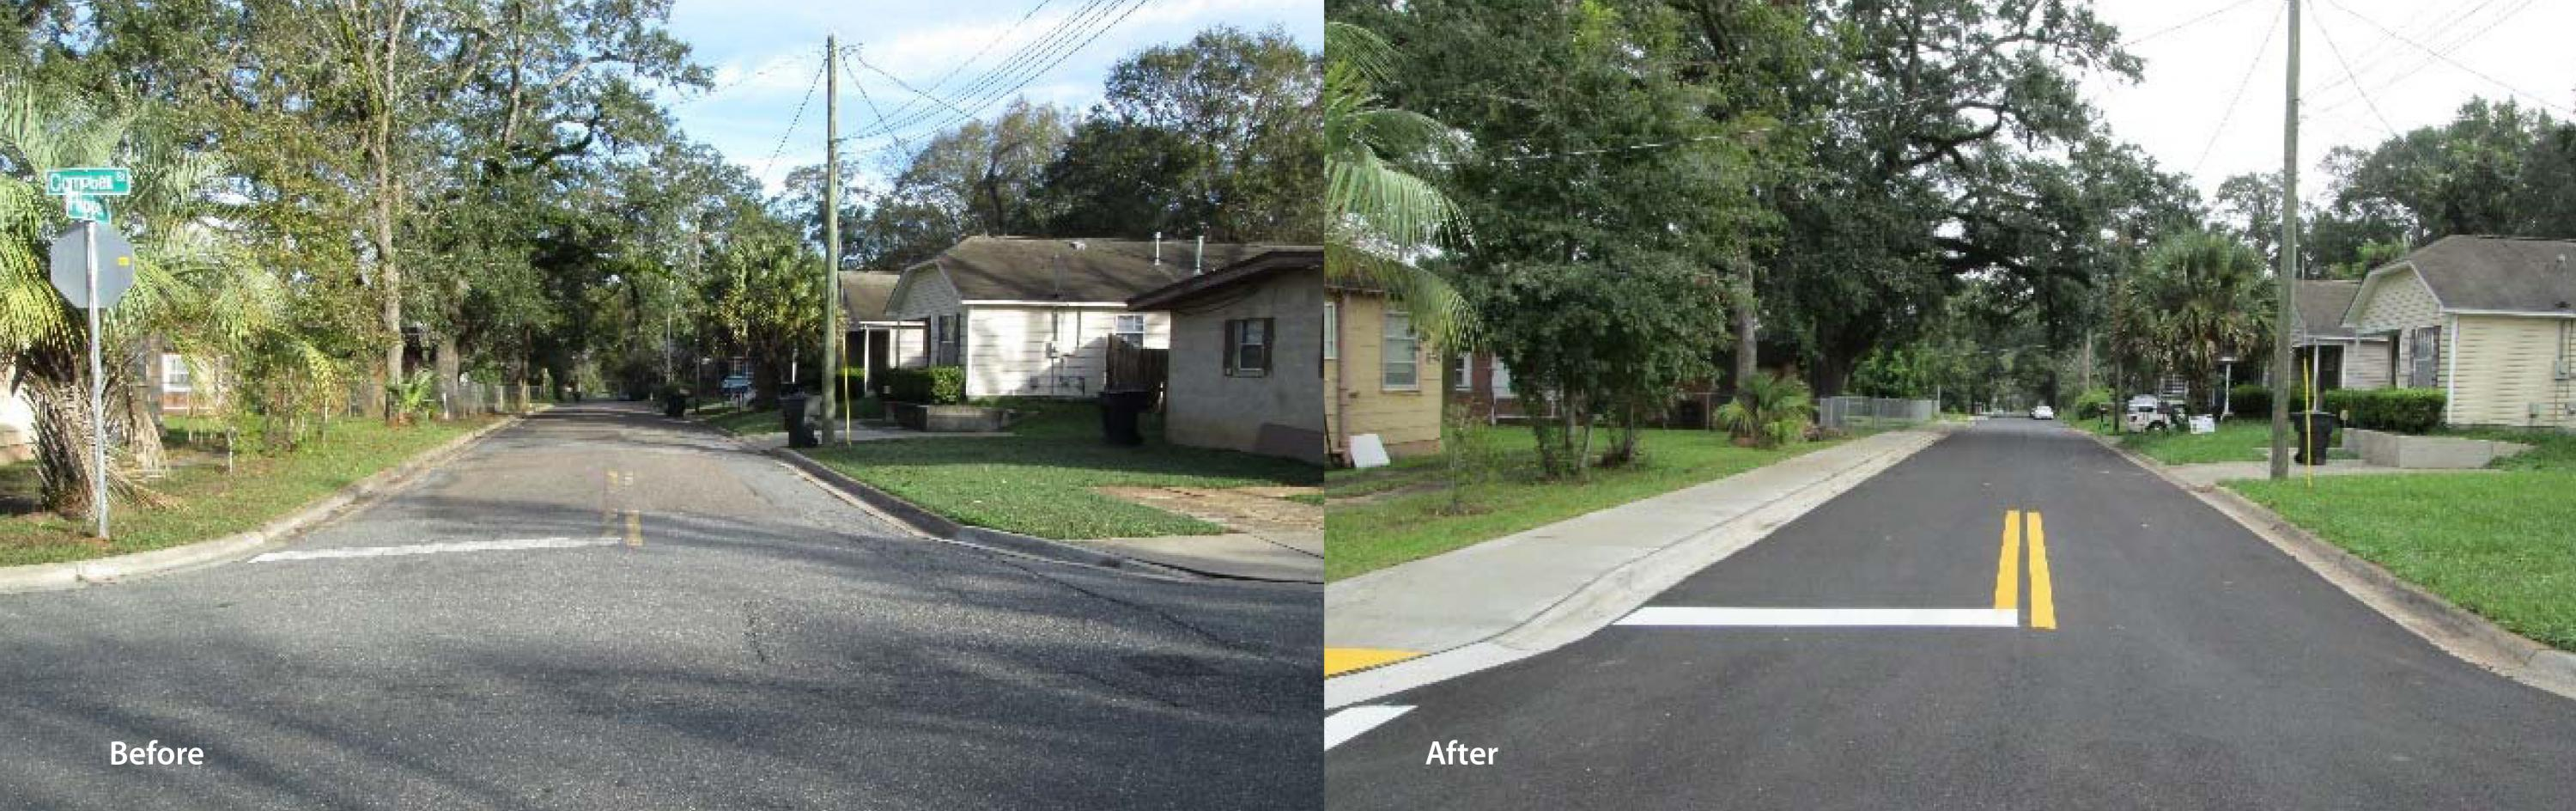 Flipper Street Before And After Website Photo